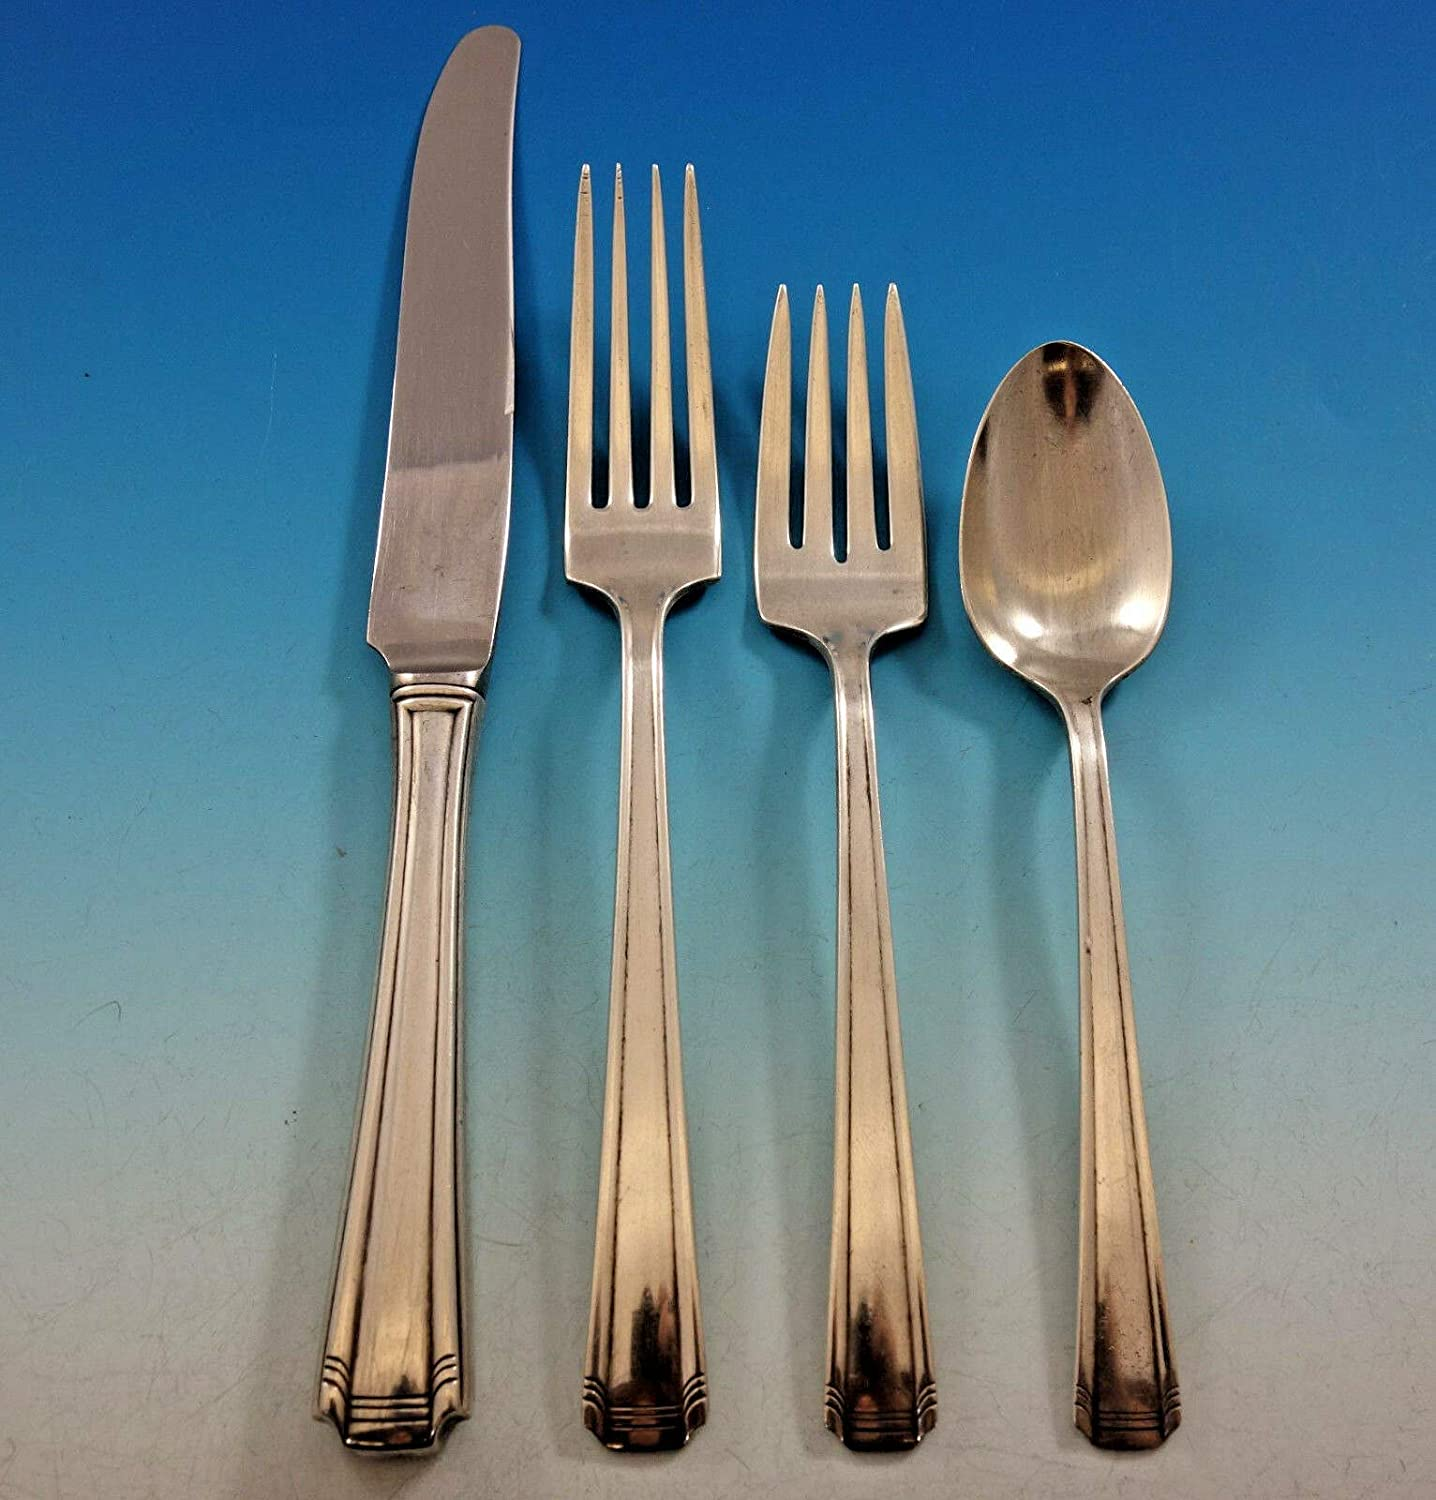 John and SEAL limited product Priscilla by Westmorland S Set Beauty products Sterling Silver Flatware